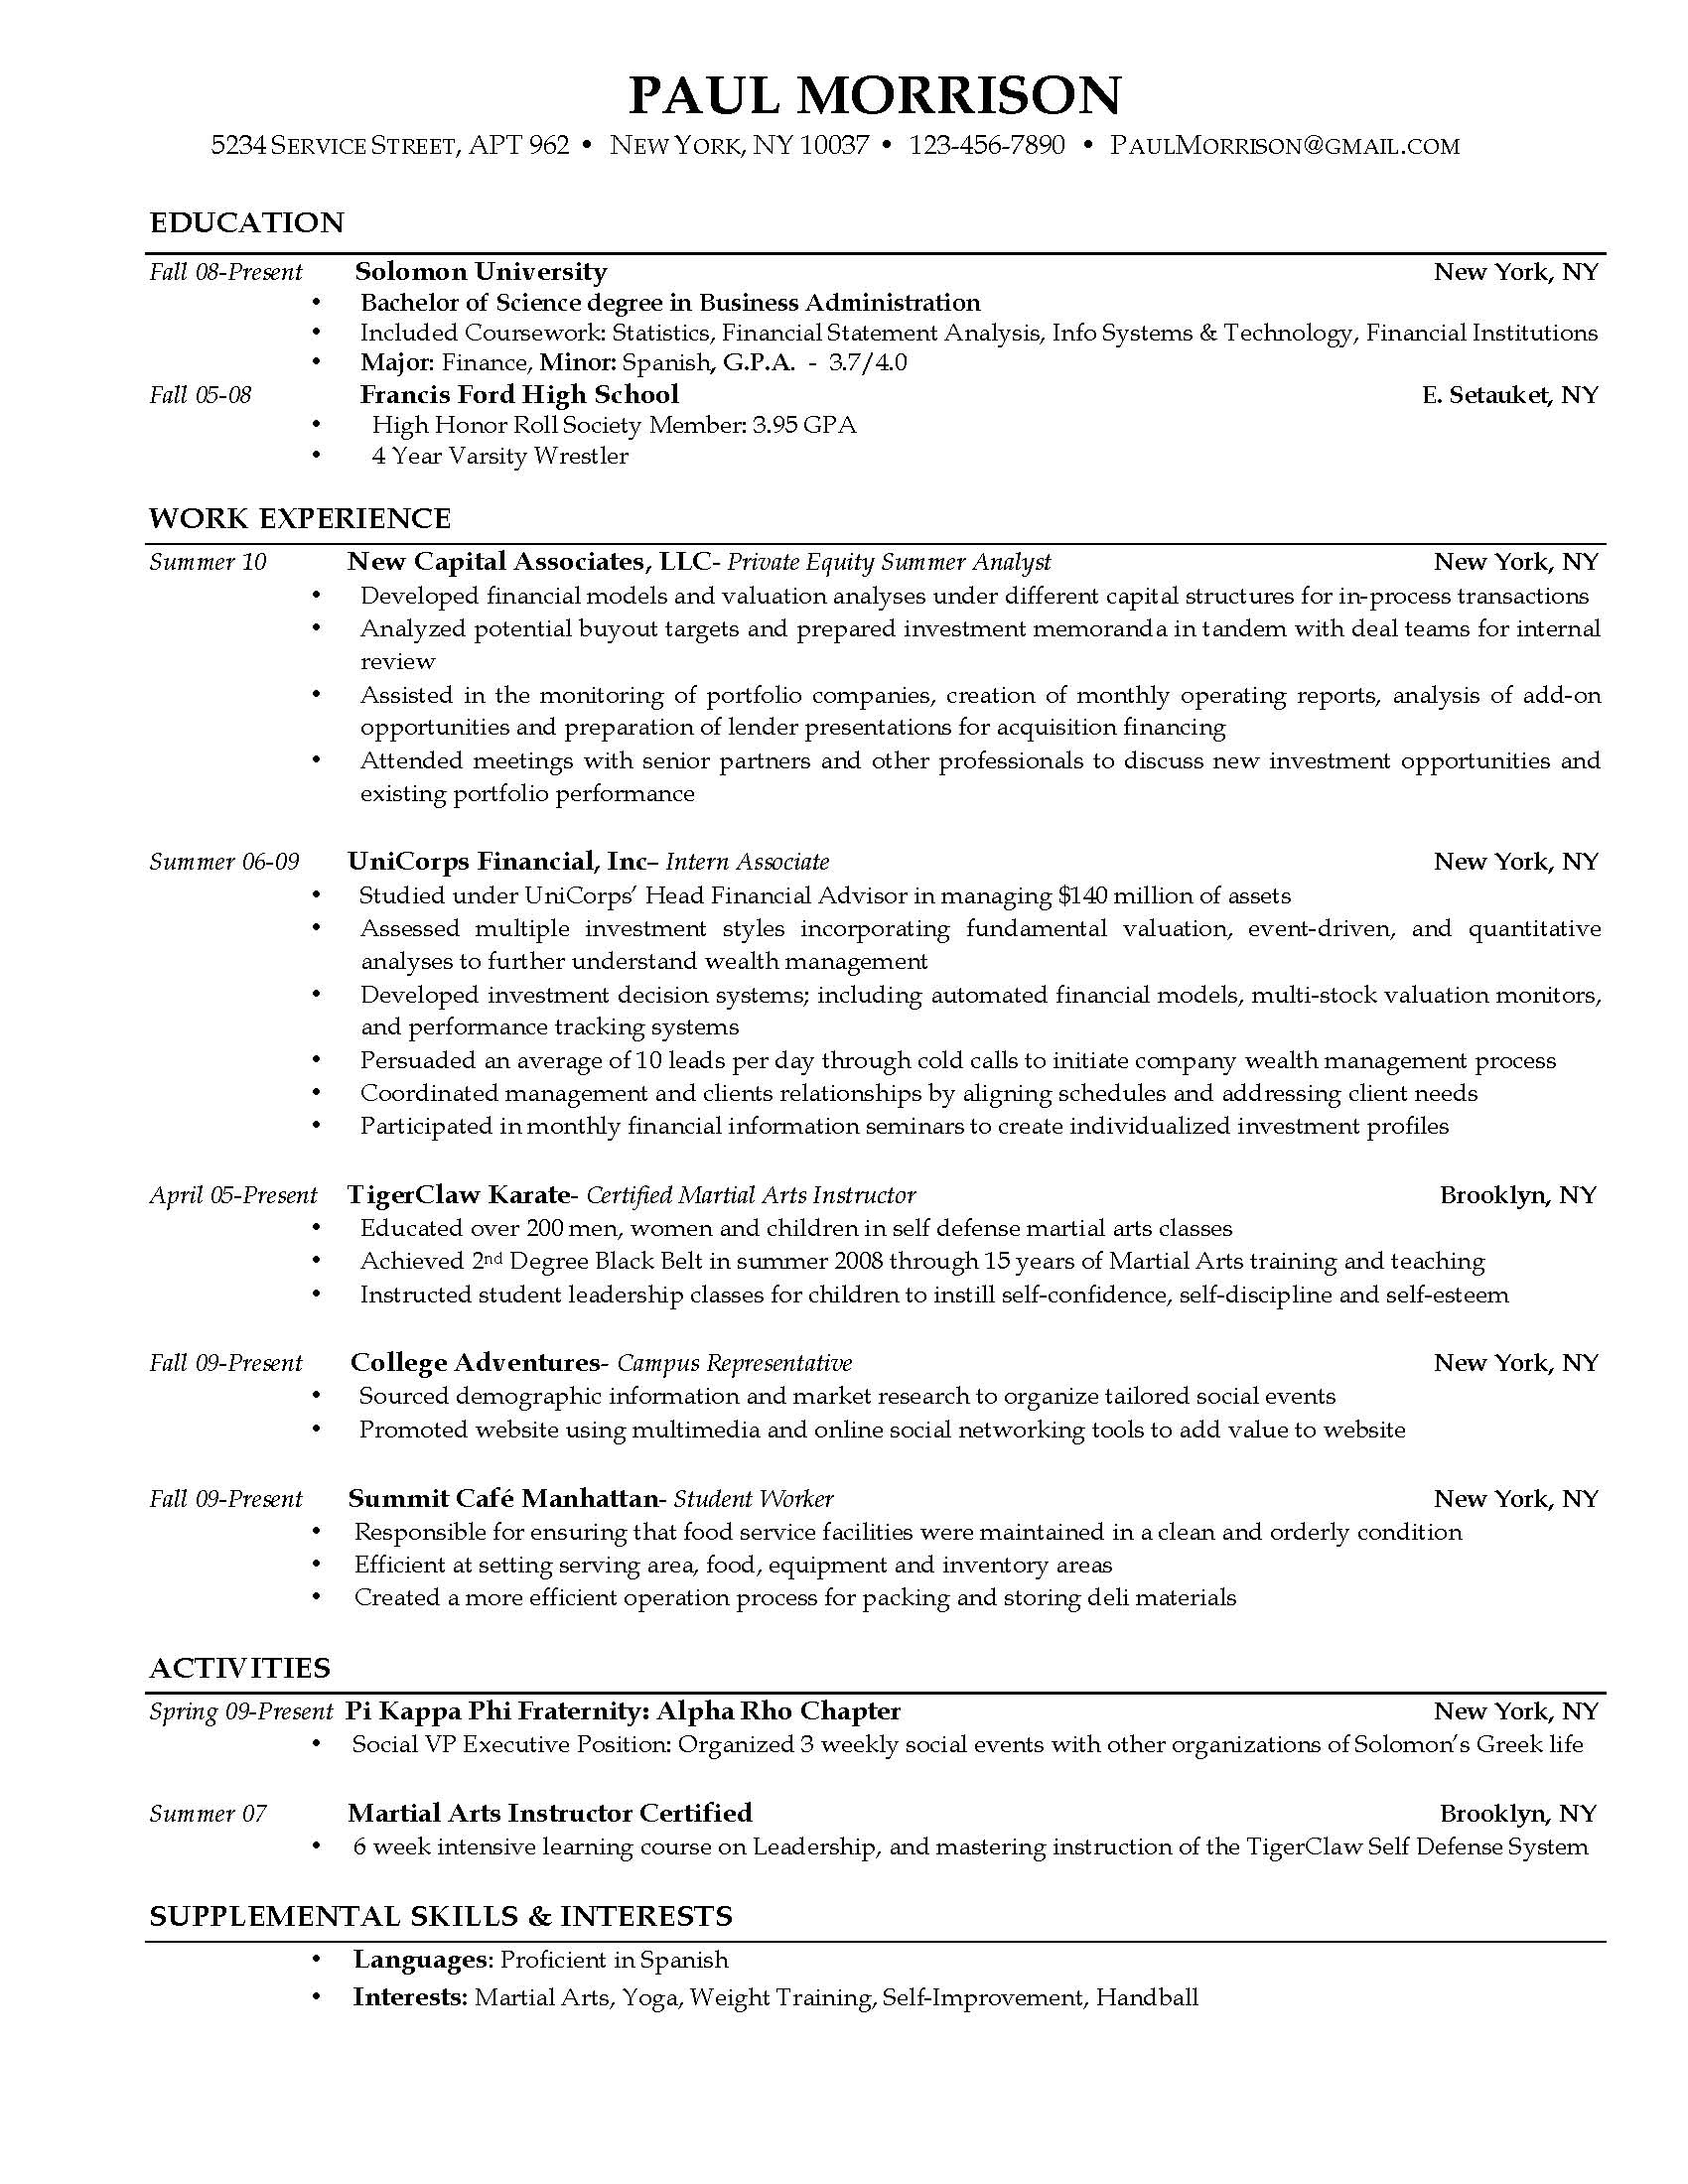 resume for college organization sample cv service resume for college organization lansing community college resume guide here is an example resume of a